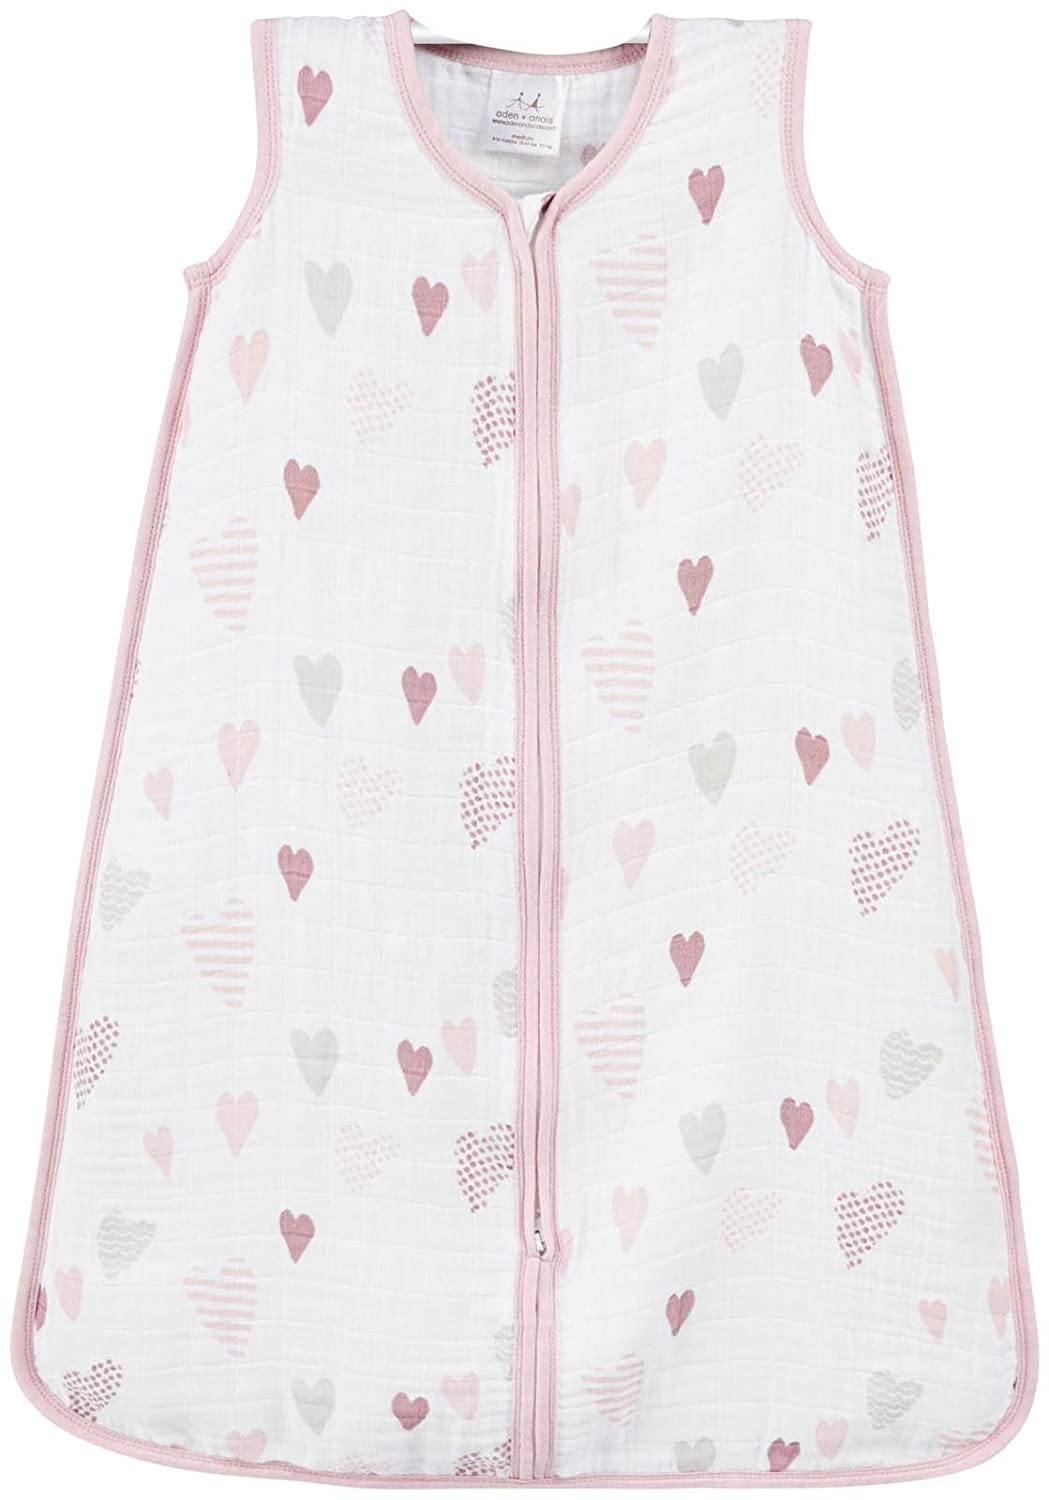 aden + anais Classic Sleeping Bag - Heartbreaker - Small